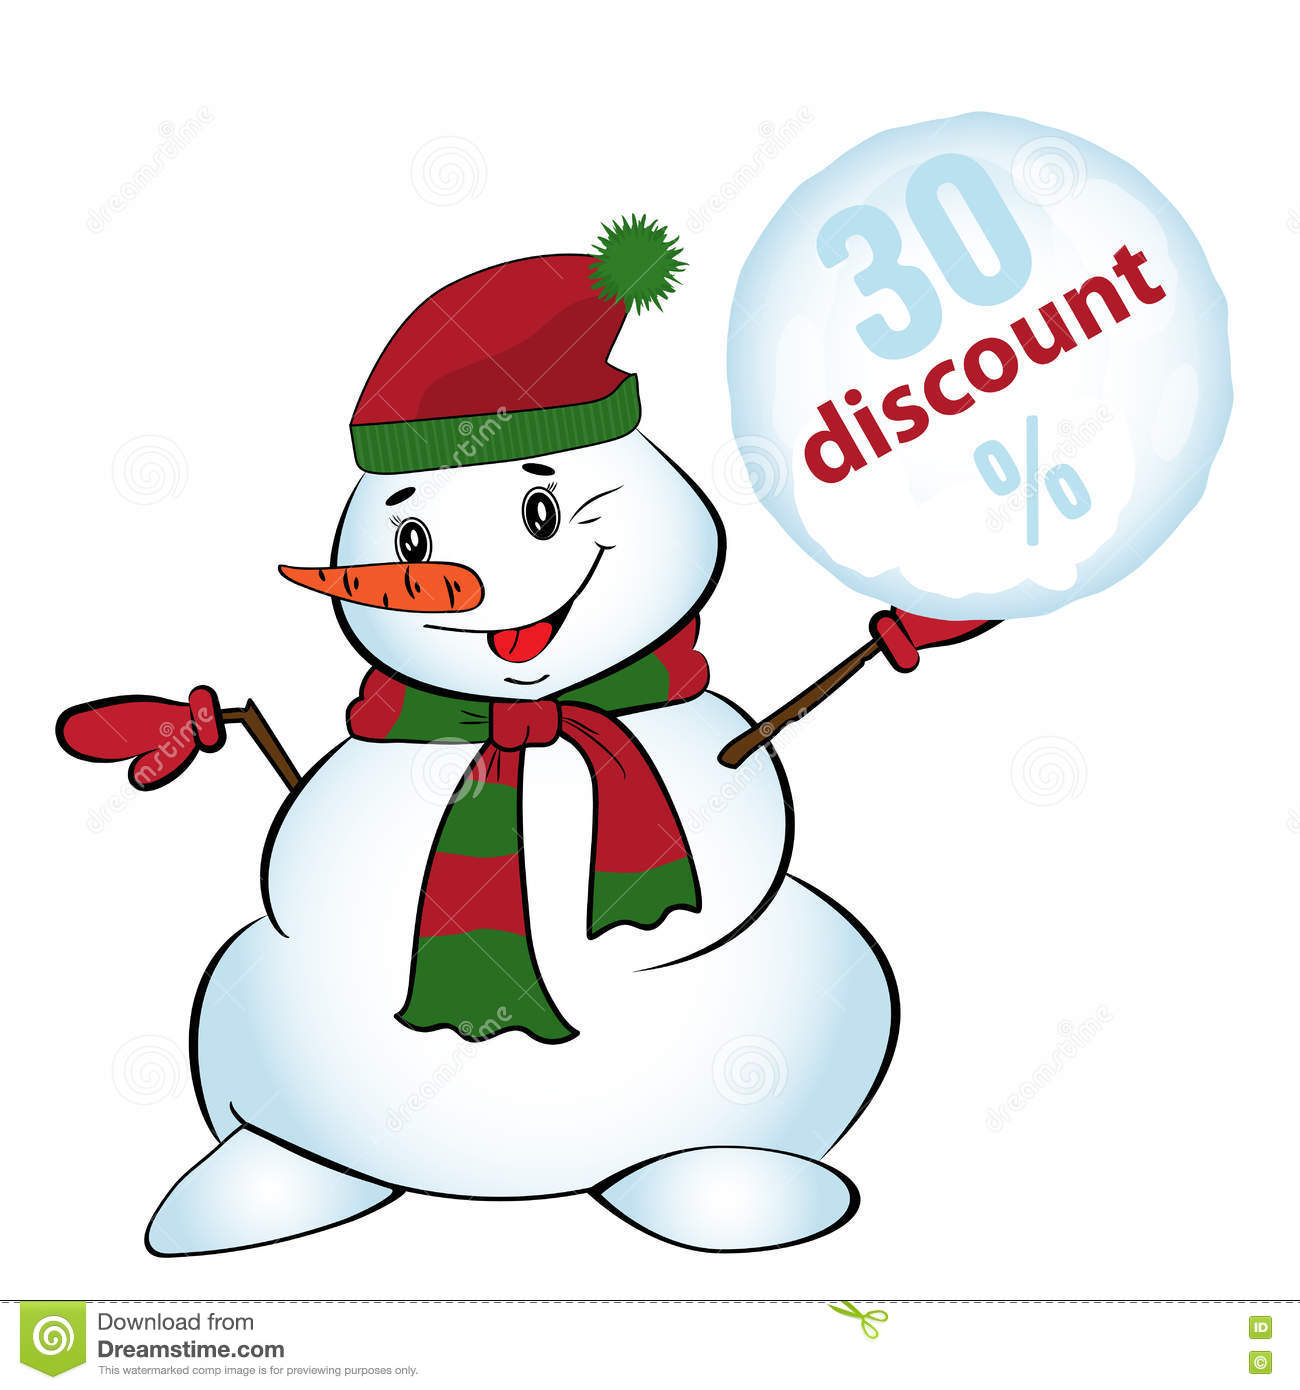 snowman throw a snowball with sale sign  discount  for